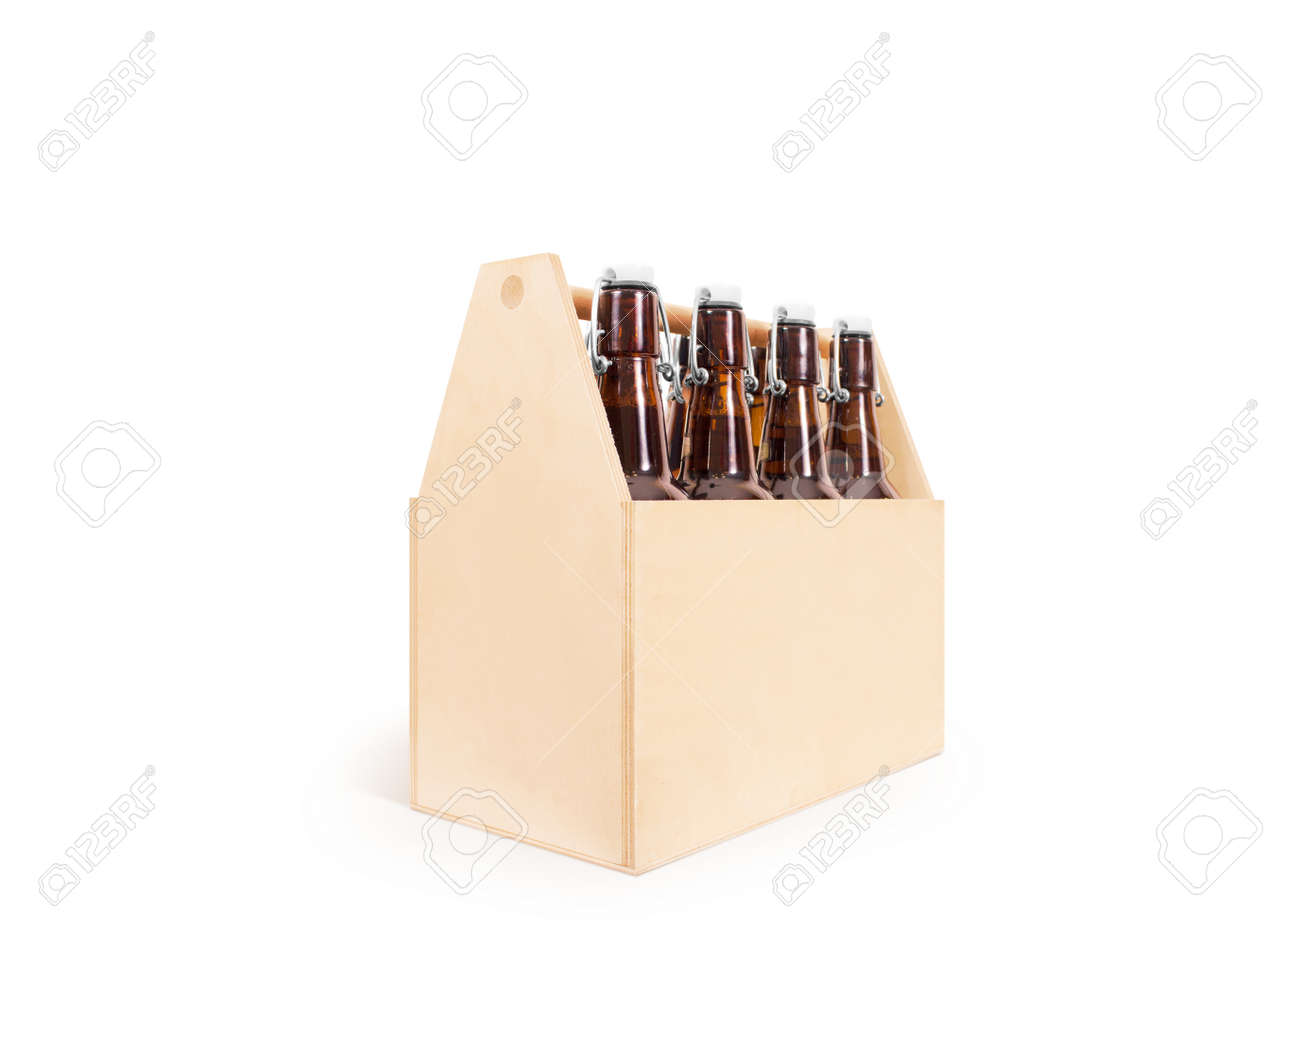 Beer Wooden Box Side Mock Up Isolated Blank Wood Cold Beer